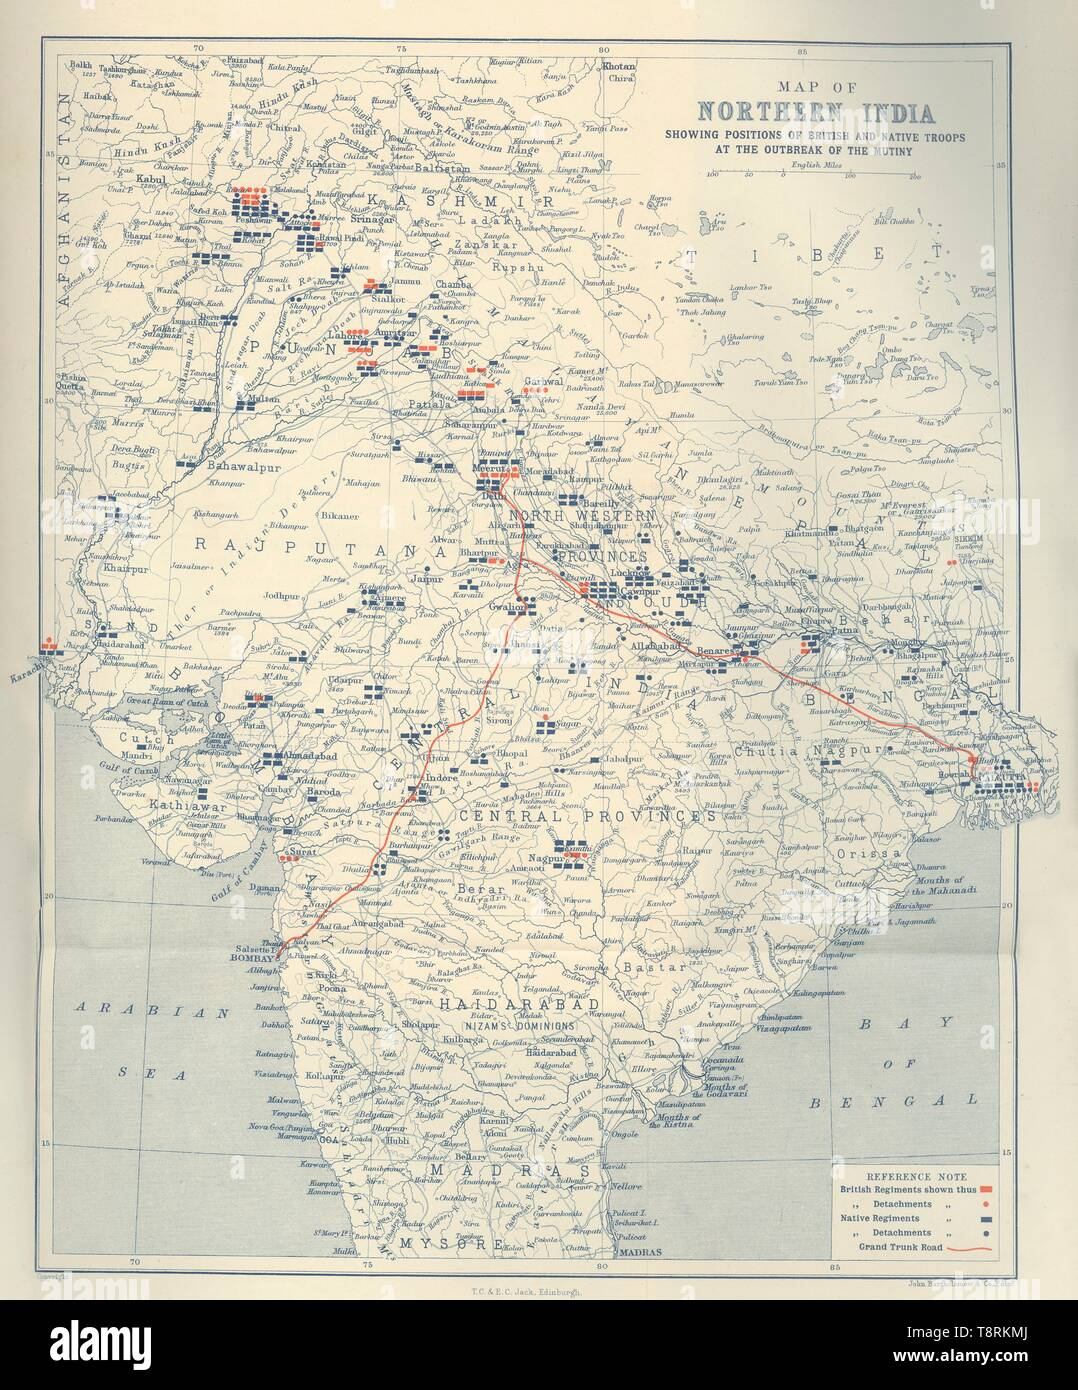 """'Map of Northern India, showing positions of British and Native Troops at the outbreak of the Mutiny', 1901. The Indian Rebellion was an uprising in India in 1857-1858, against the rule of the British East India Company. From """"The Life and Deeds of Earl Roberts, Vol. I. - To The End of the Indian Mutiny"""", by J. Maclaren Cobban. [T. C. & E. C. Jack, Edinburgh, 1901] - Stock Image"""